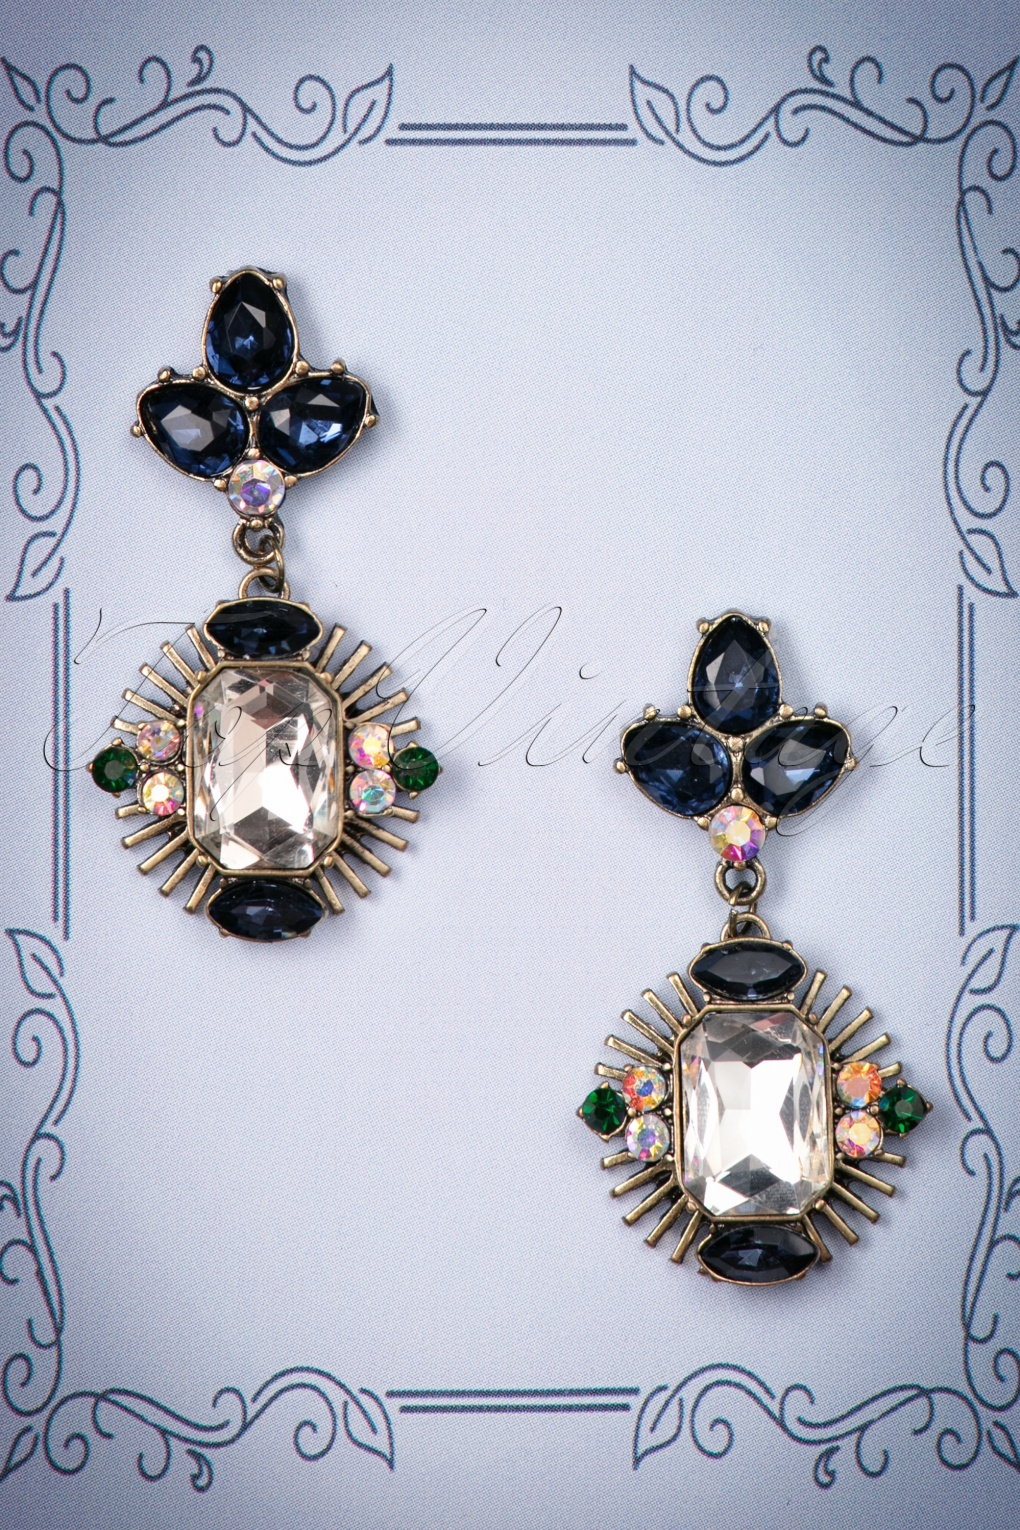 1920s Gatsby Jewelry- Flapper Earrings, Necklaces, Bracelets 20s Stephanie Blue Stone Aztec Earrings in Gold £13.24 AT vintagedancer.com